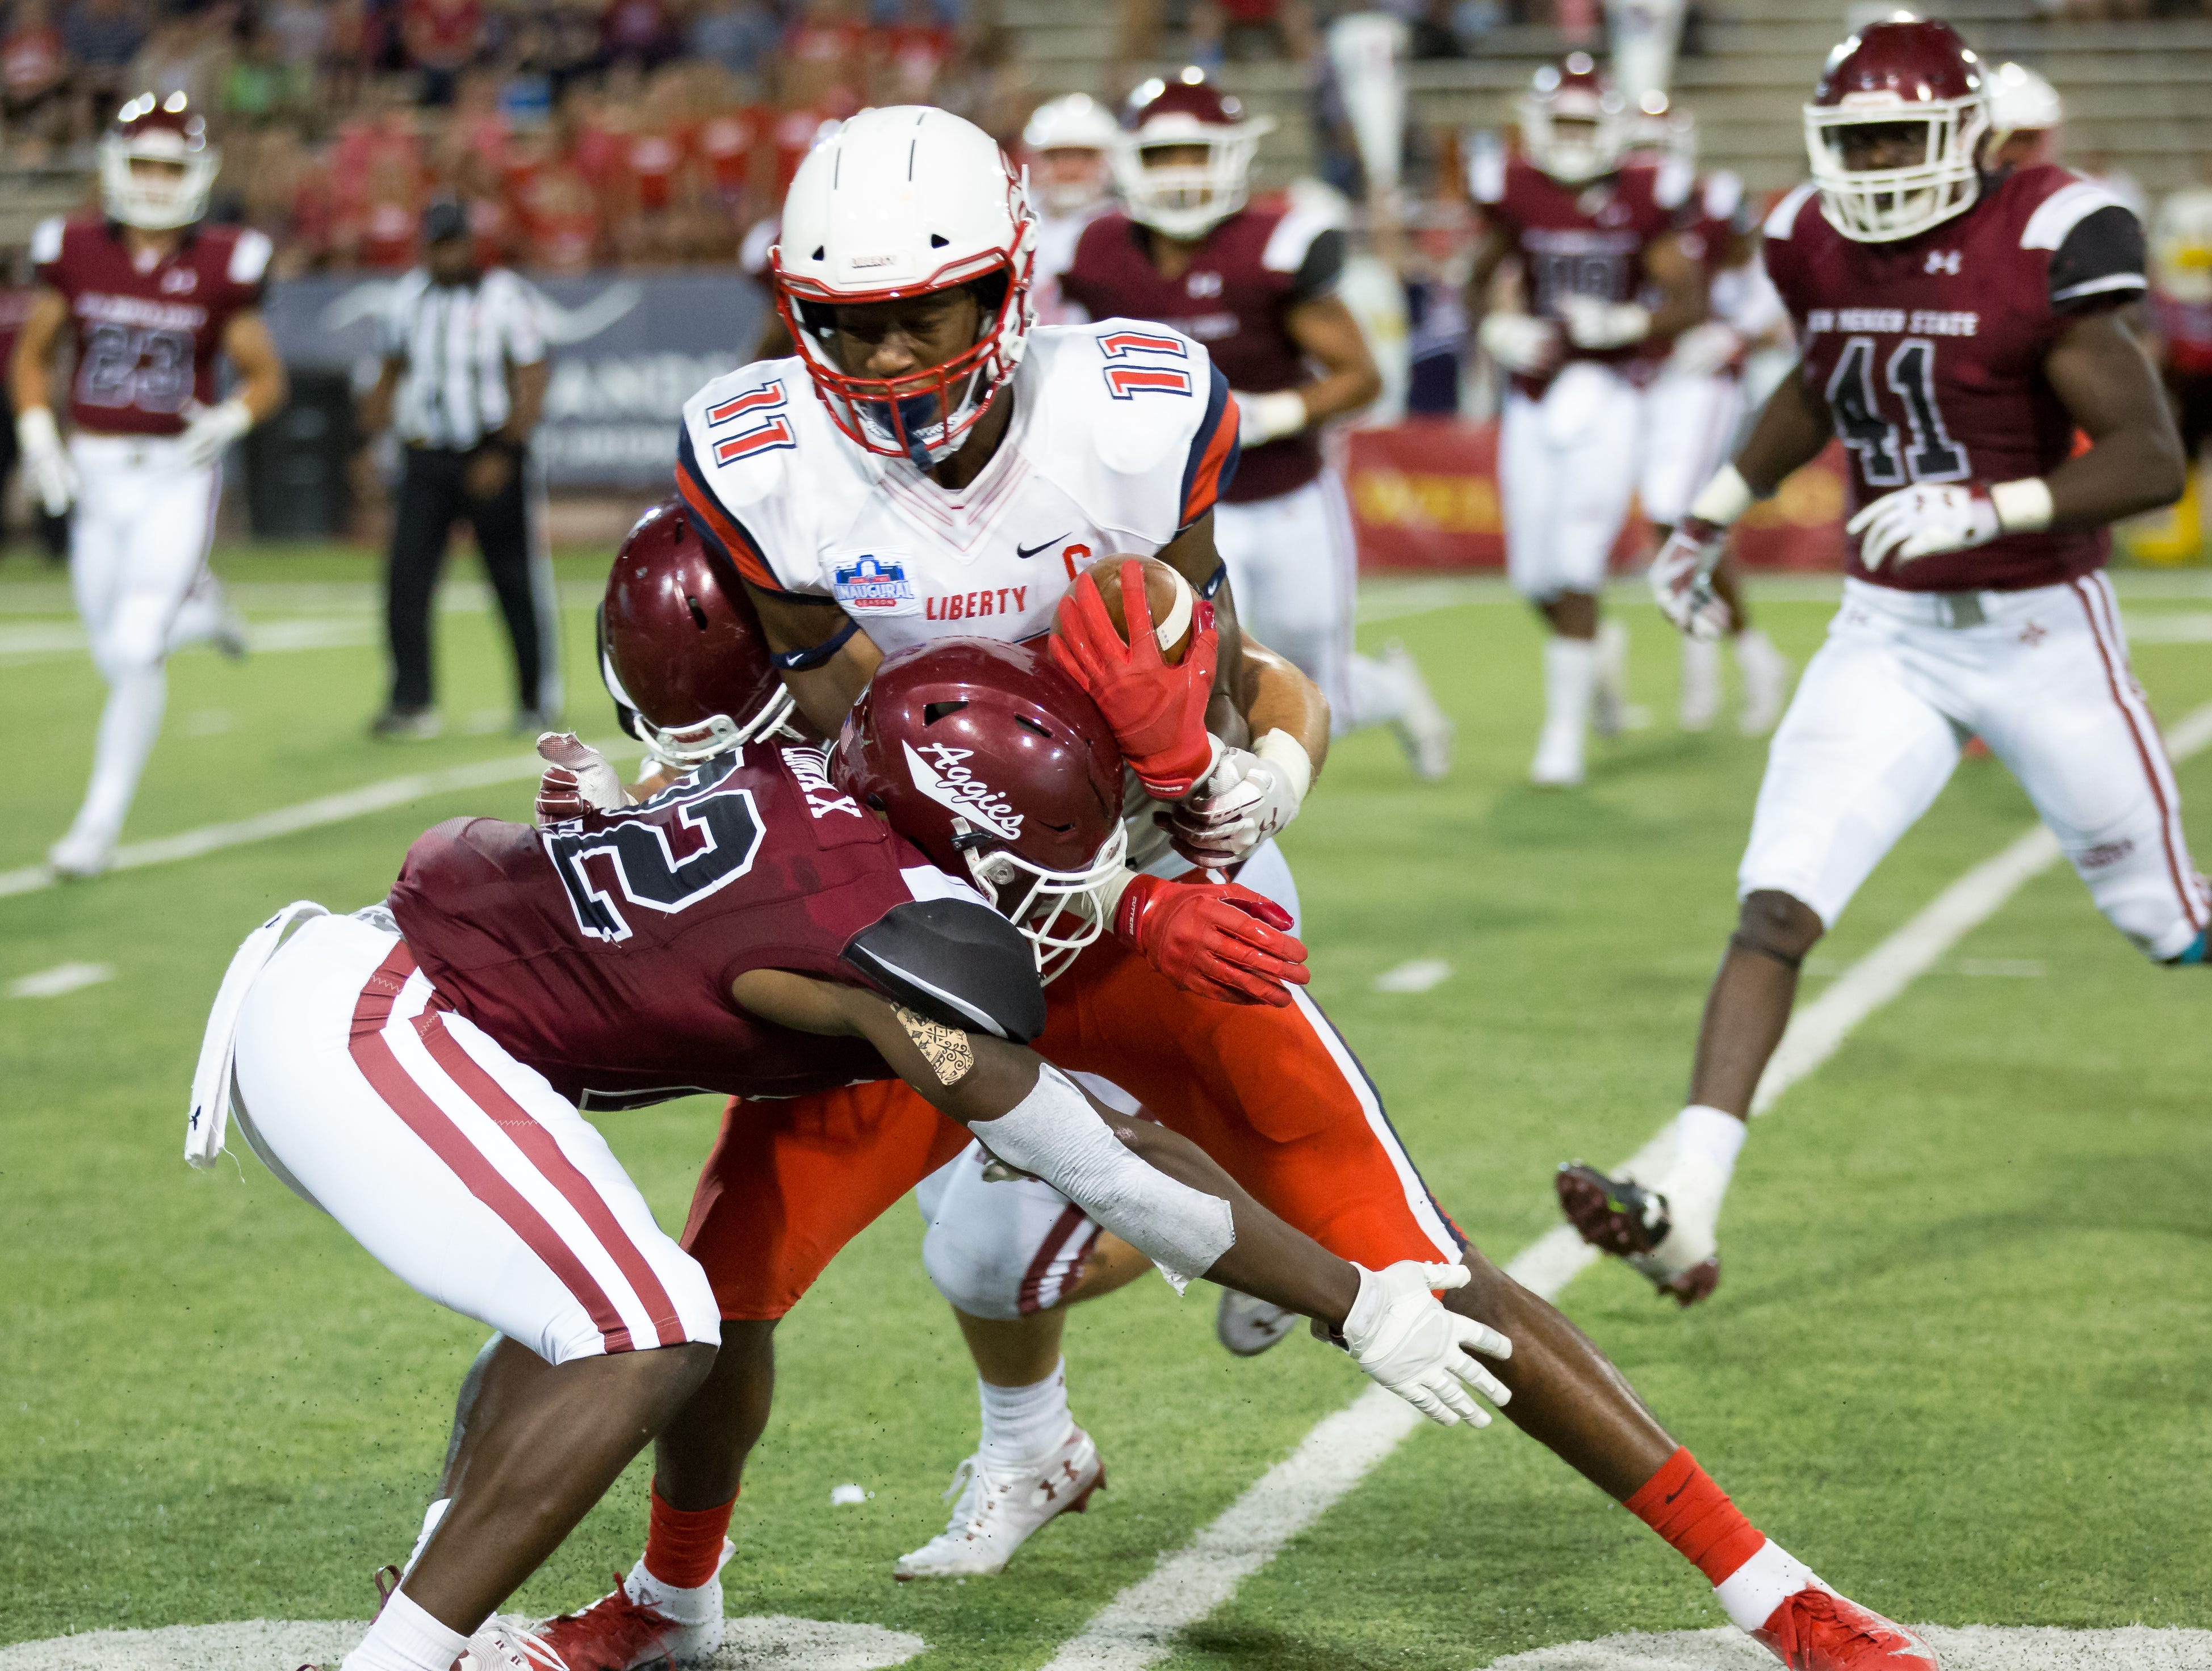 Liberty's Antonio Grandy-Golden is wrapped up by NMSU's Shamad Lomax on Saturday, Oct. 6, 2018 at Aggie Memorial Stadium.